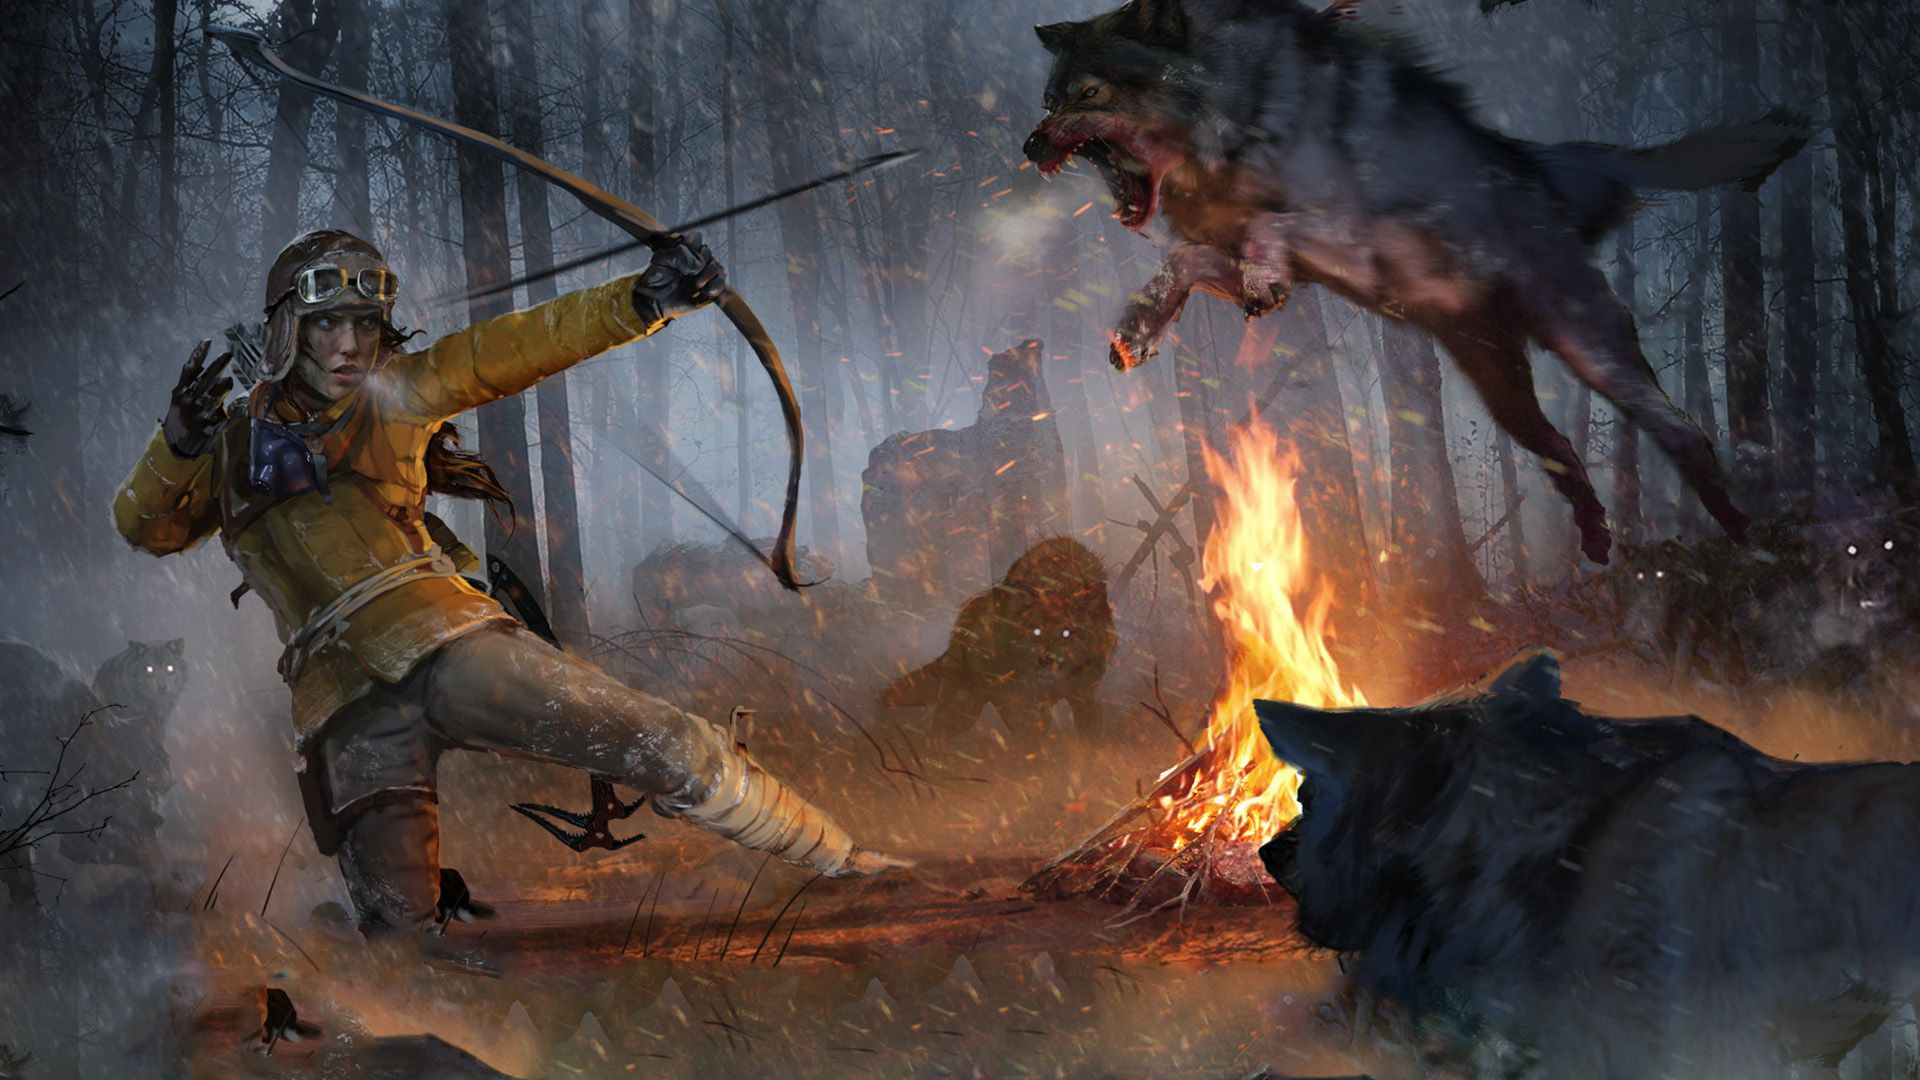 rise-of-the-tomb-raider-sparrowhawk-pack-pc-steam-cd-key-satin-al-durmaplay.jpg